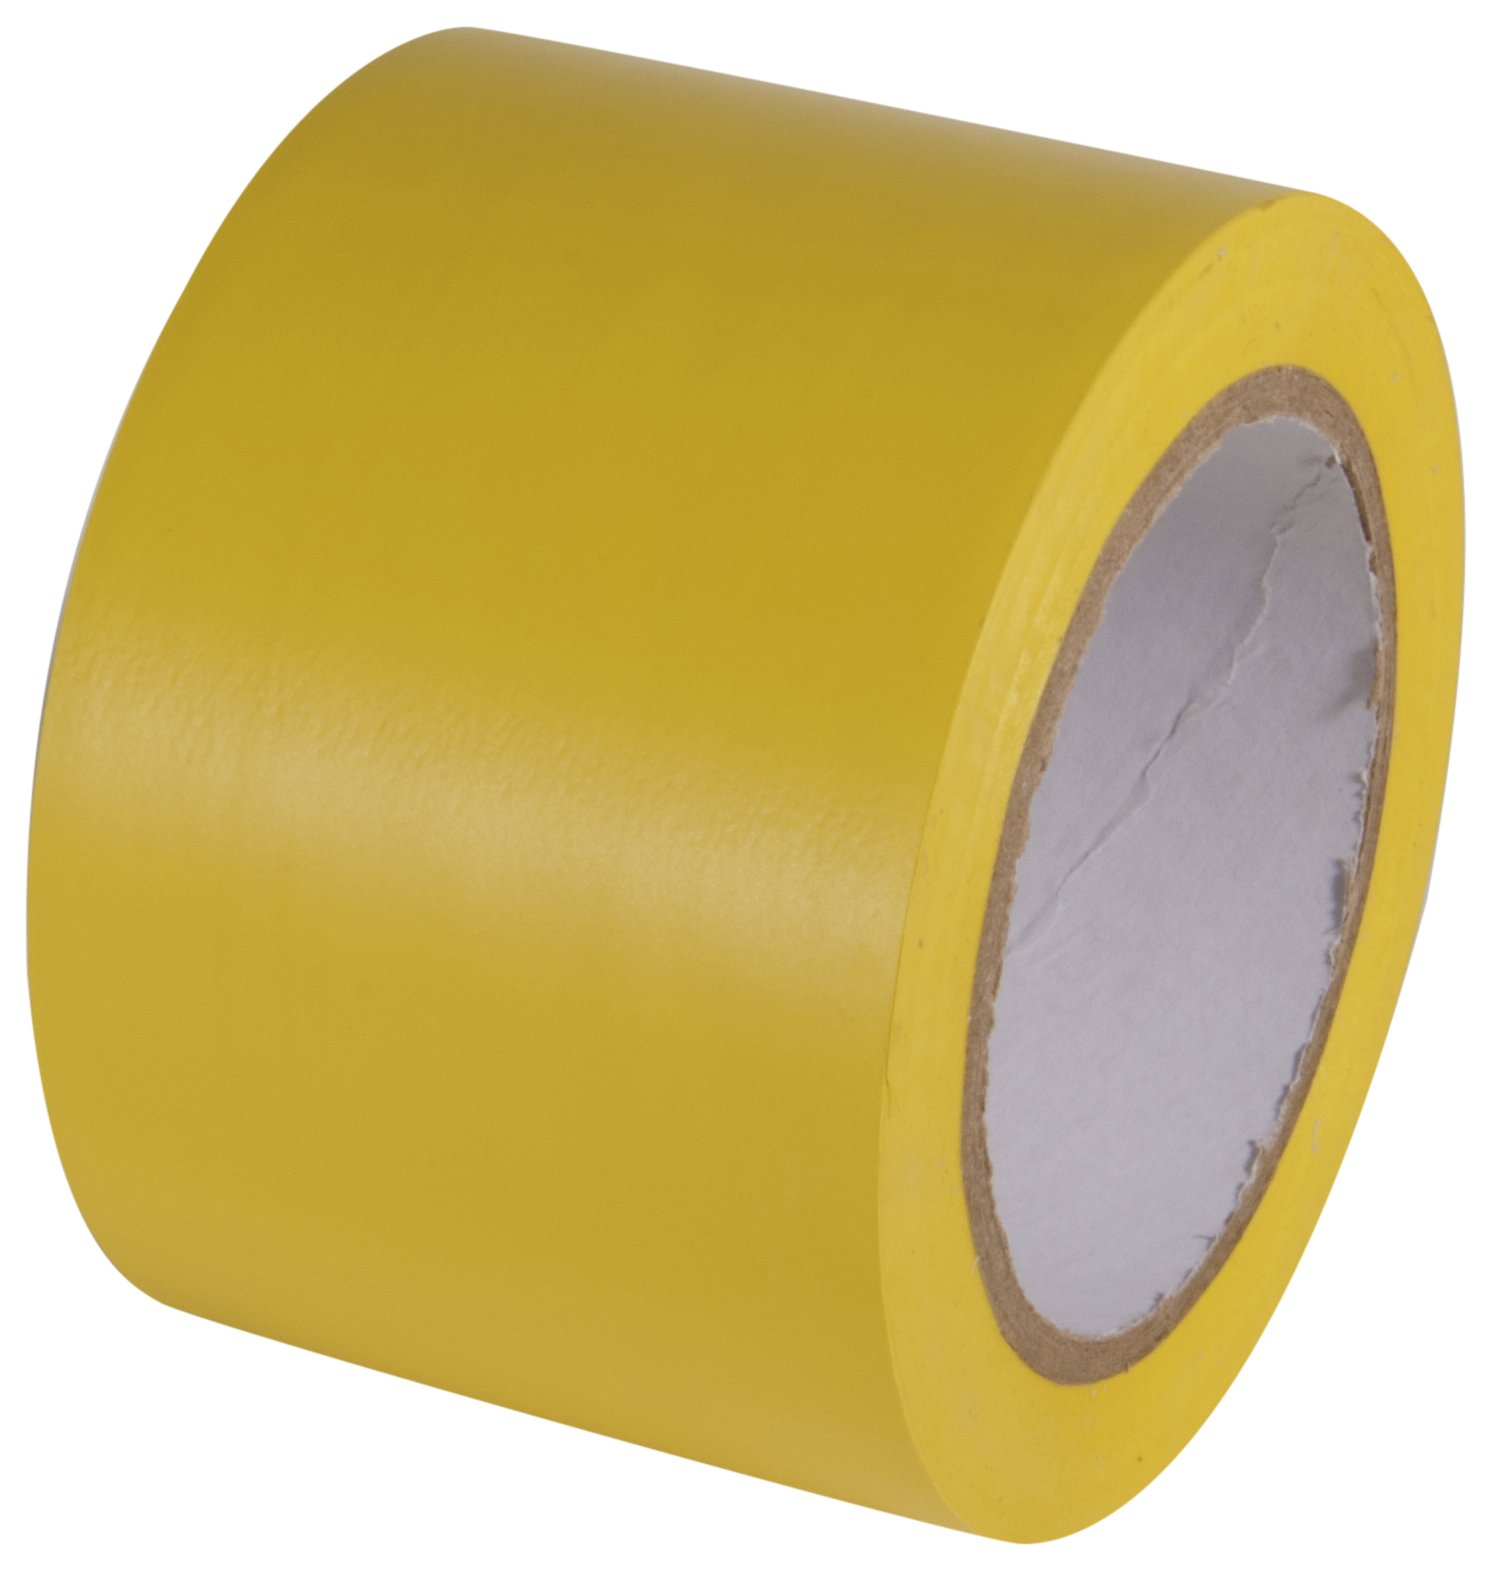 INCOM Manufacturing: Vinyl Aisle Marking Conformable Tape, 3'' x 180', Safety Yellow- Ideal for Walls, Floors, Equipment